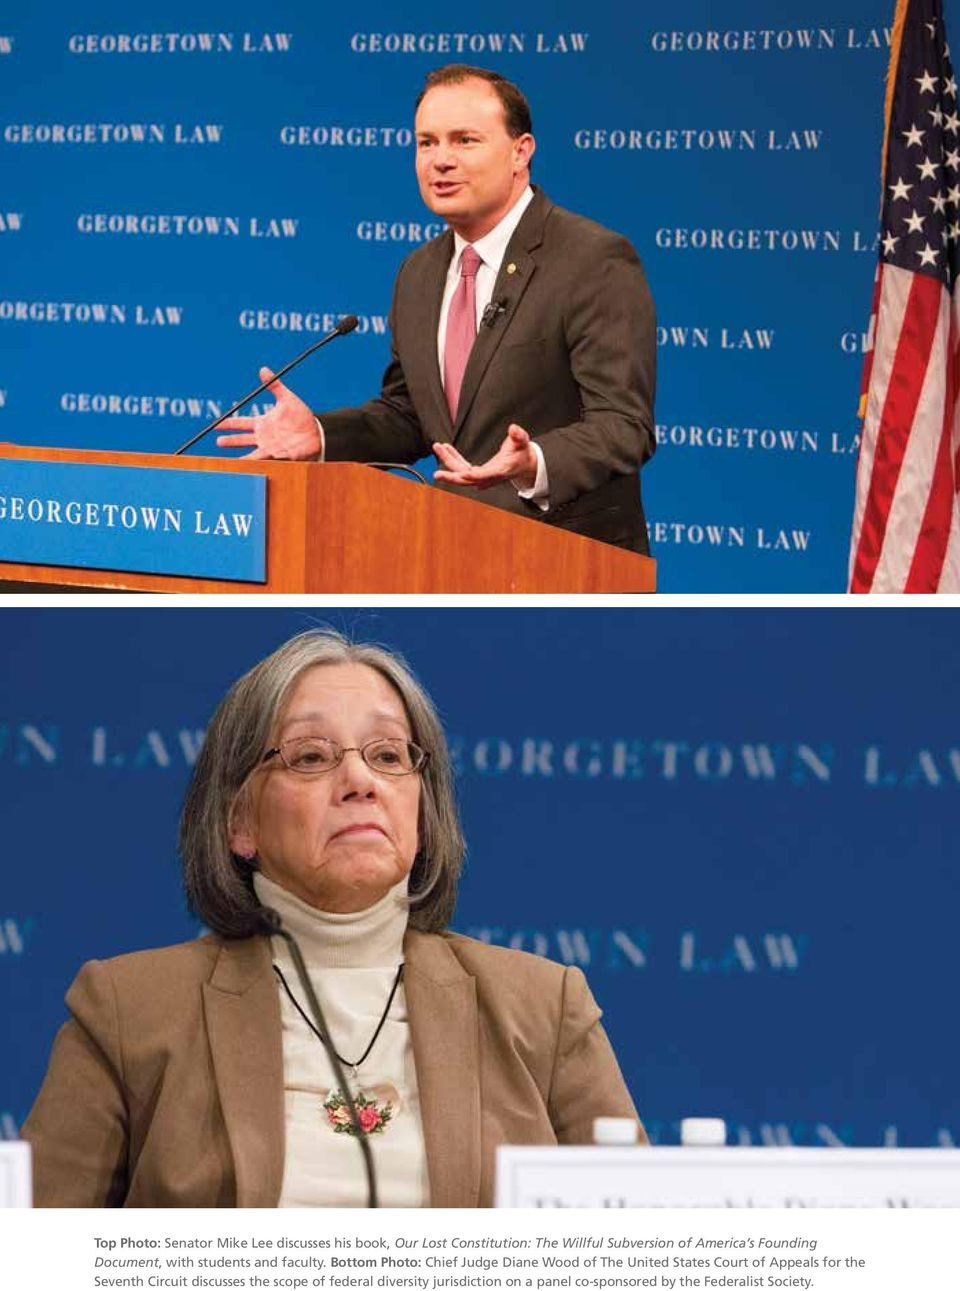 Bottom Photo: Chief Judge Diane Wood of The United States Court of Appeals for the